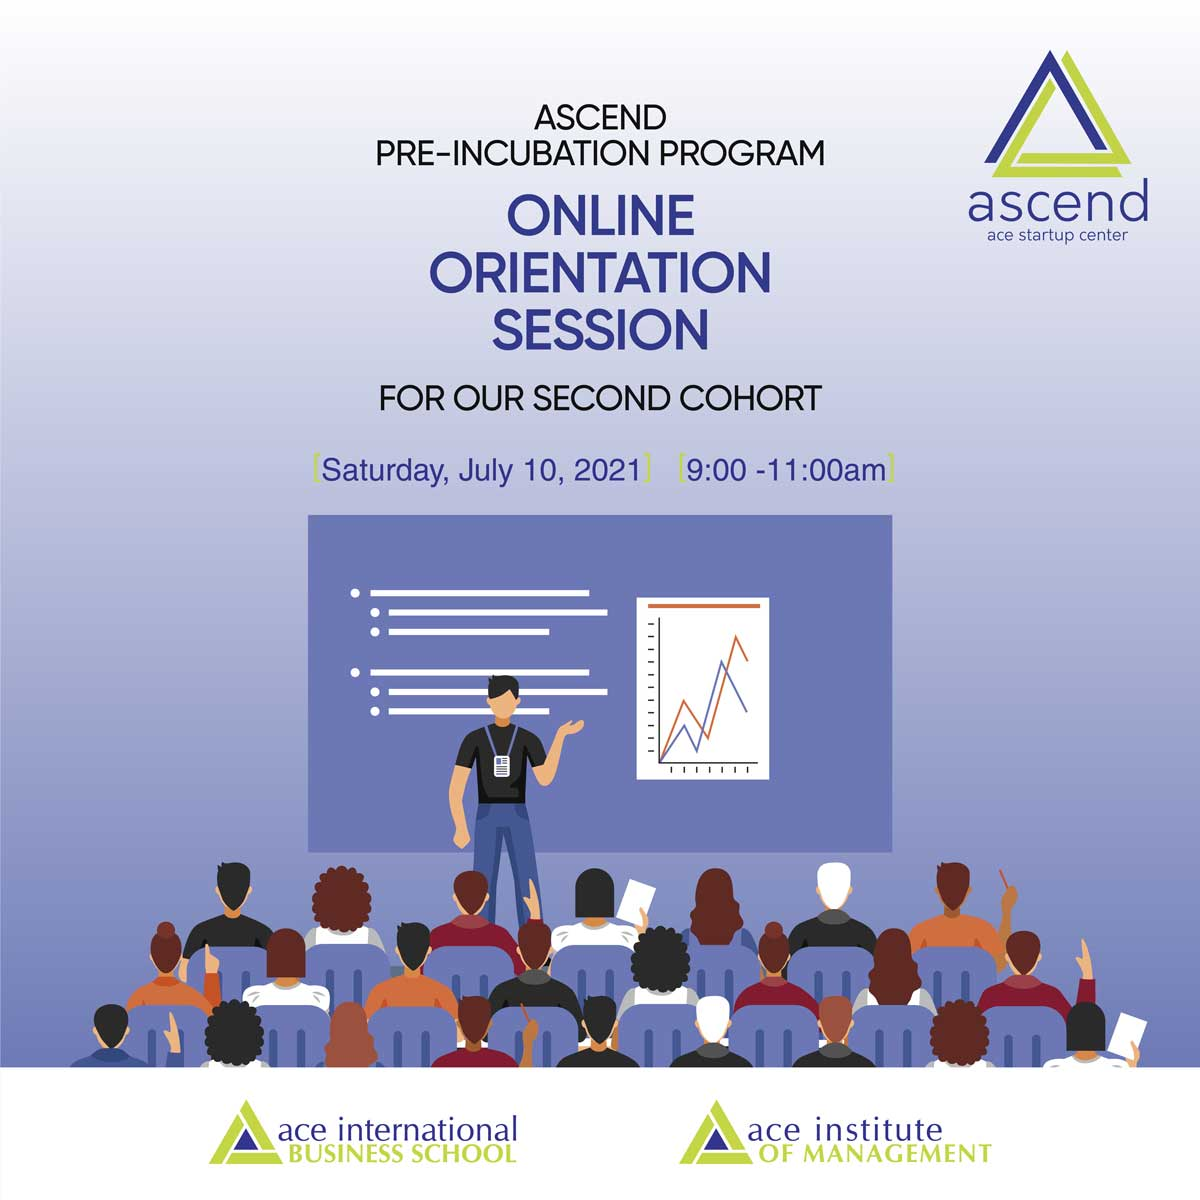 Orientation for the new cohort of Ascend Ace Start-up Center.